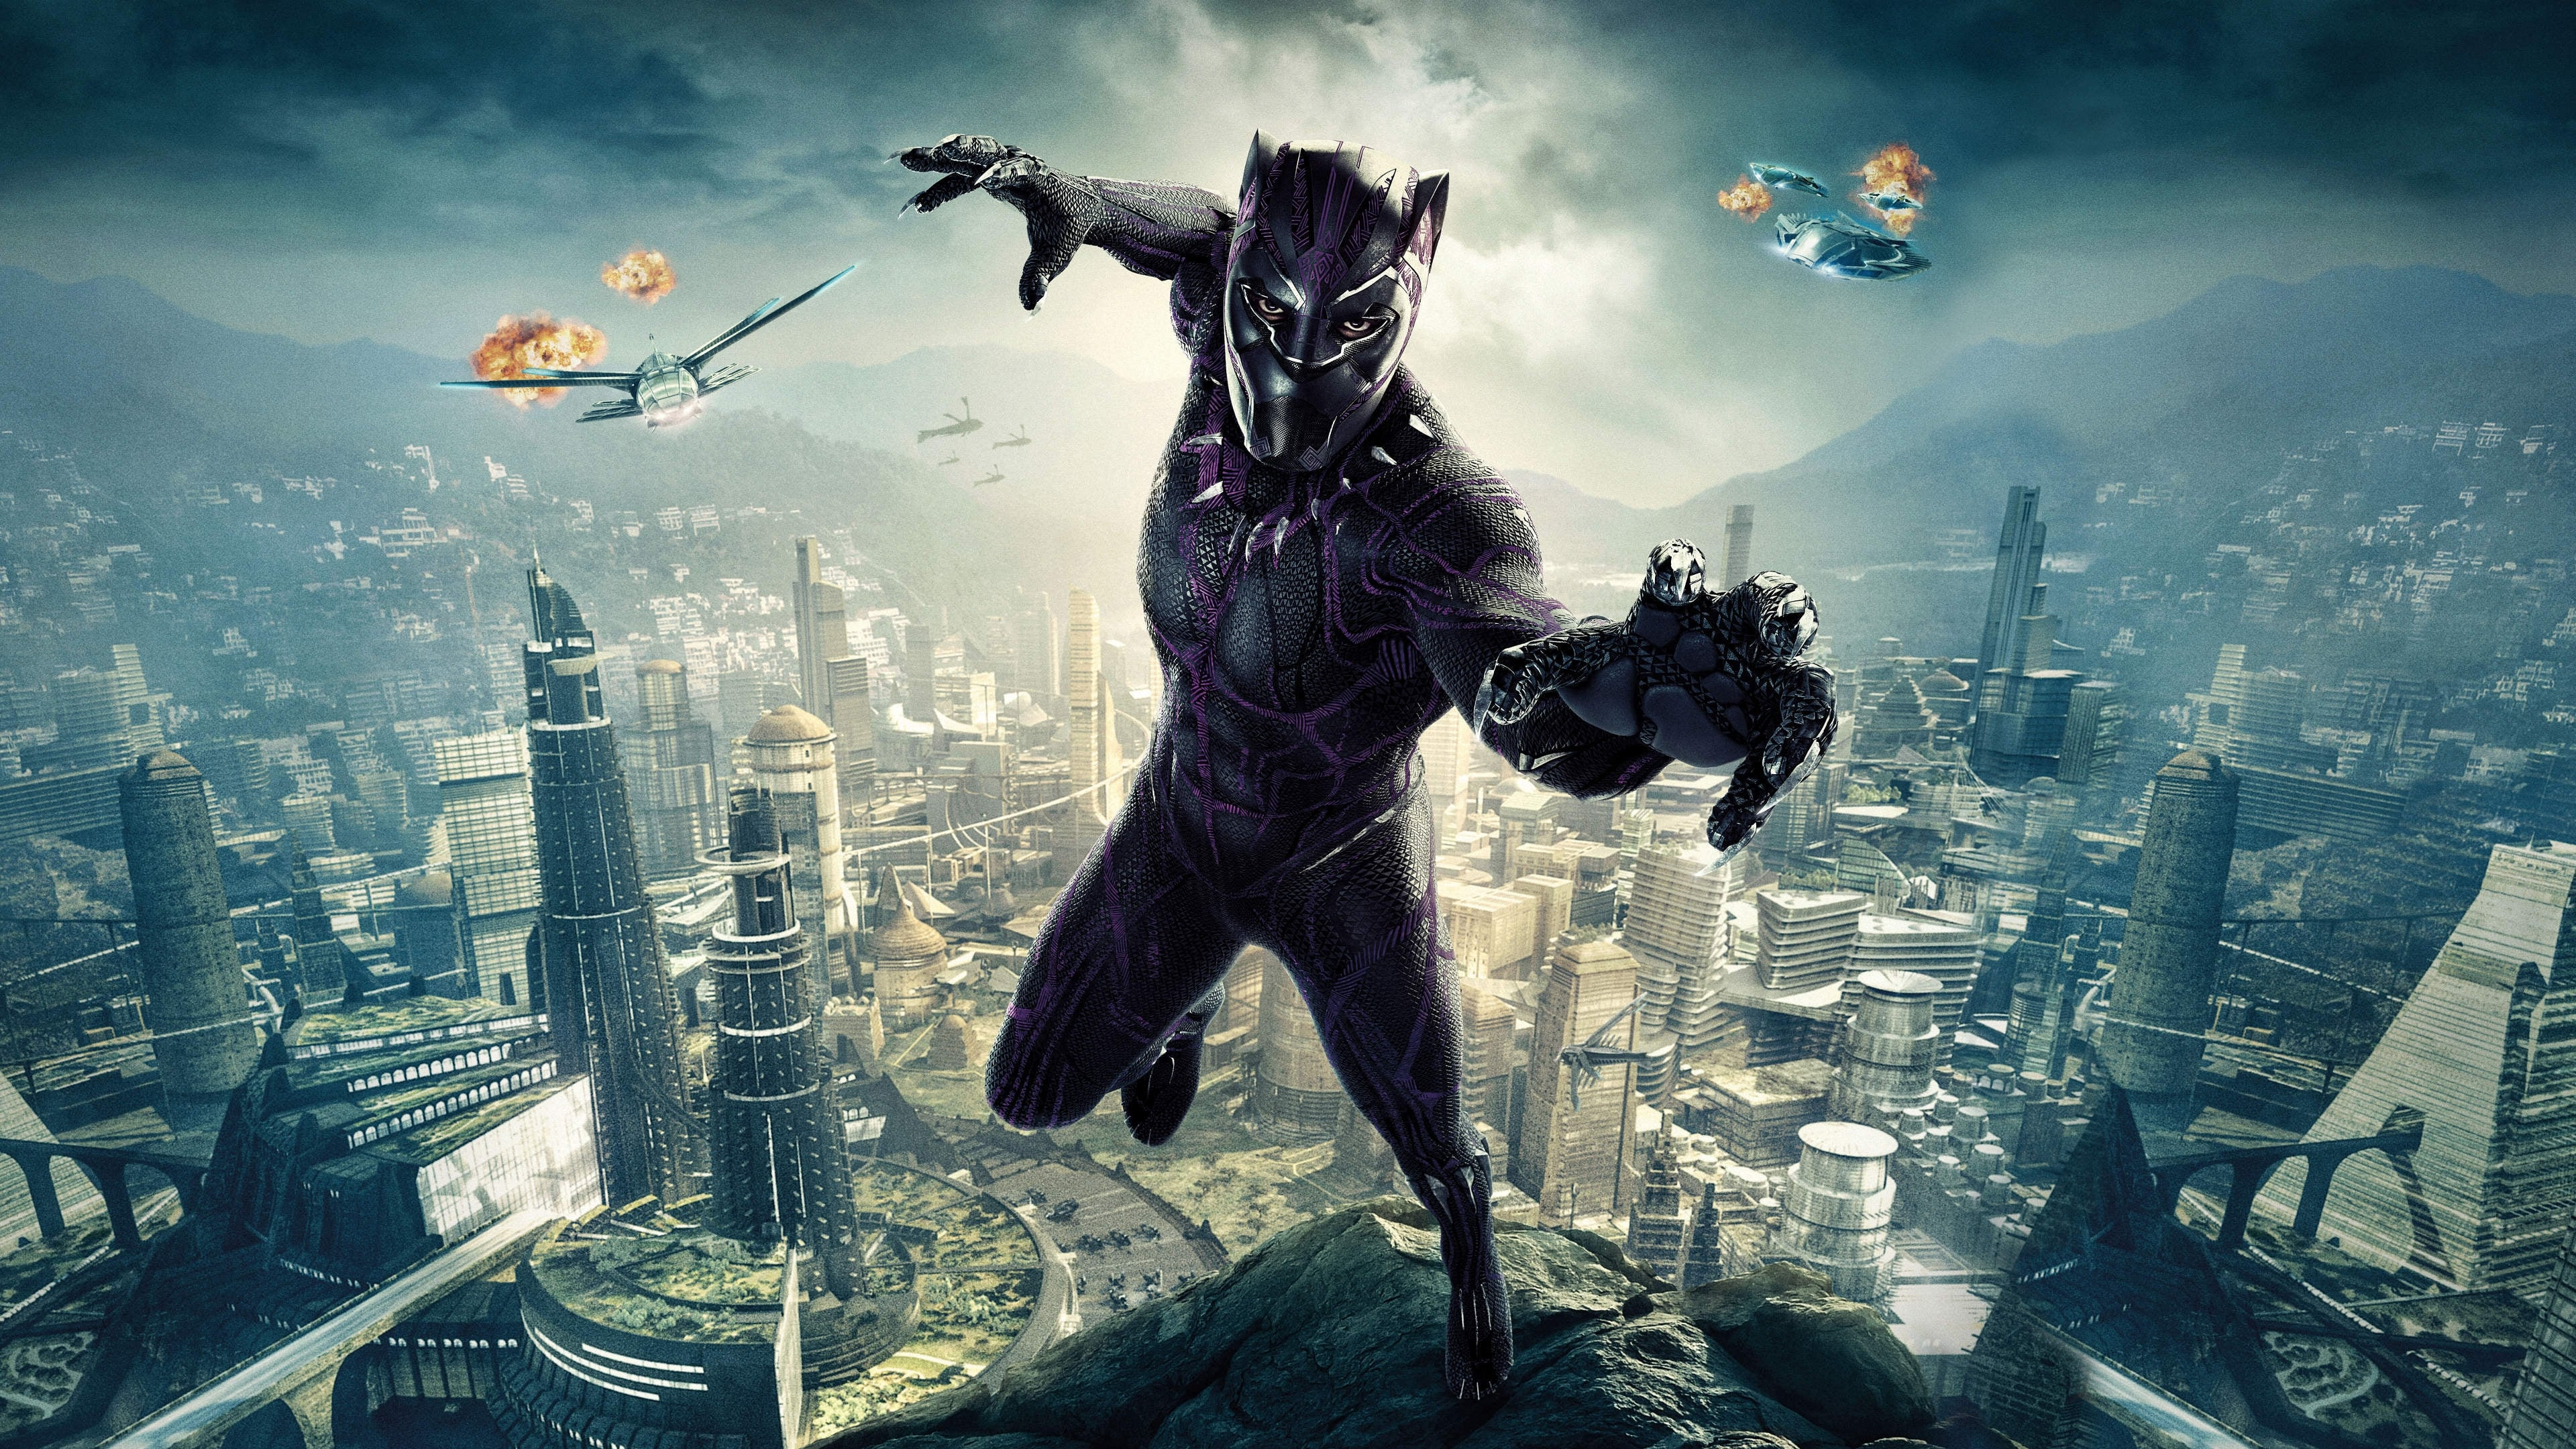 Watch Full Black Panther 2018 Summary Movie